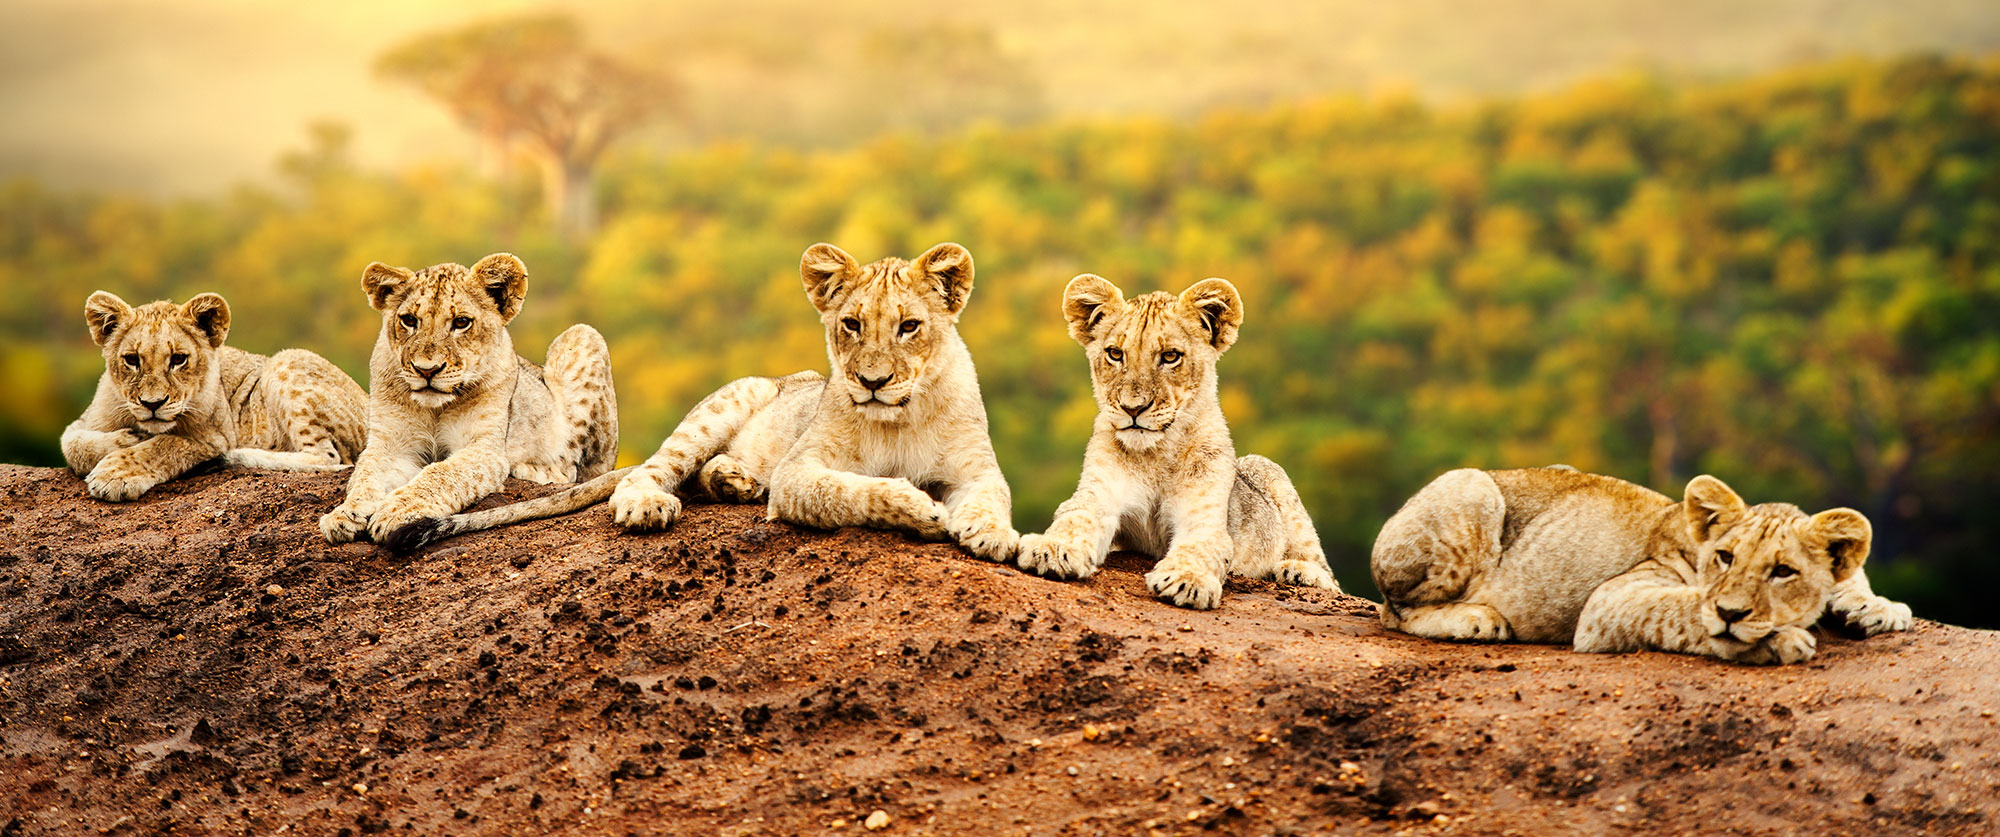 South Africa Travel Packages